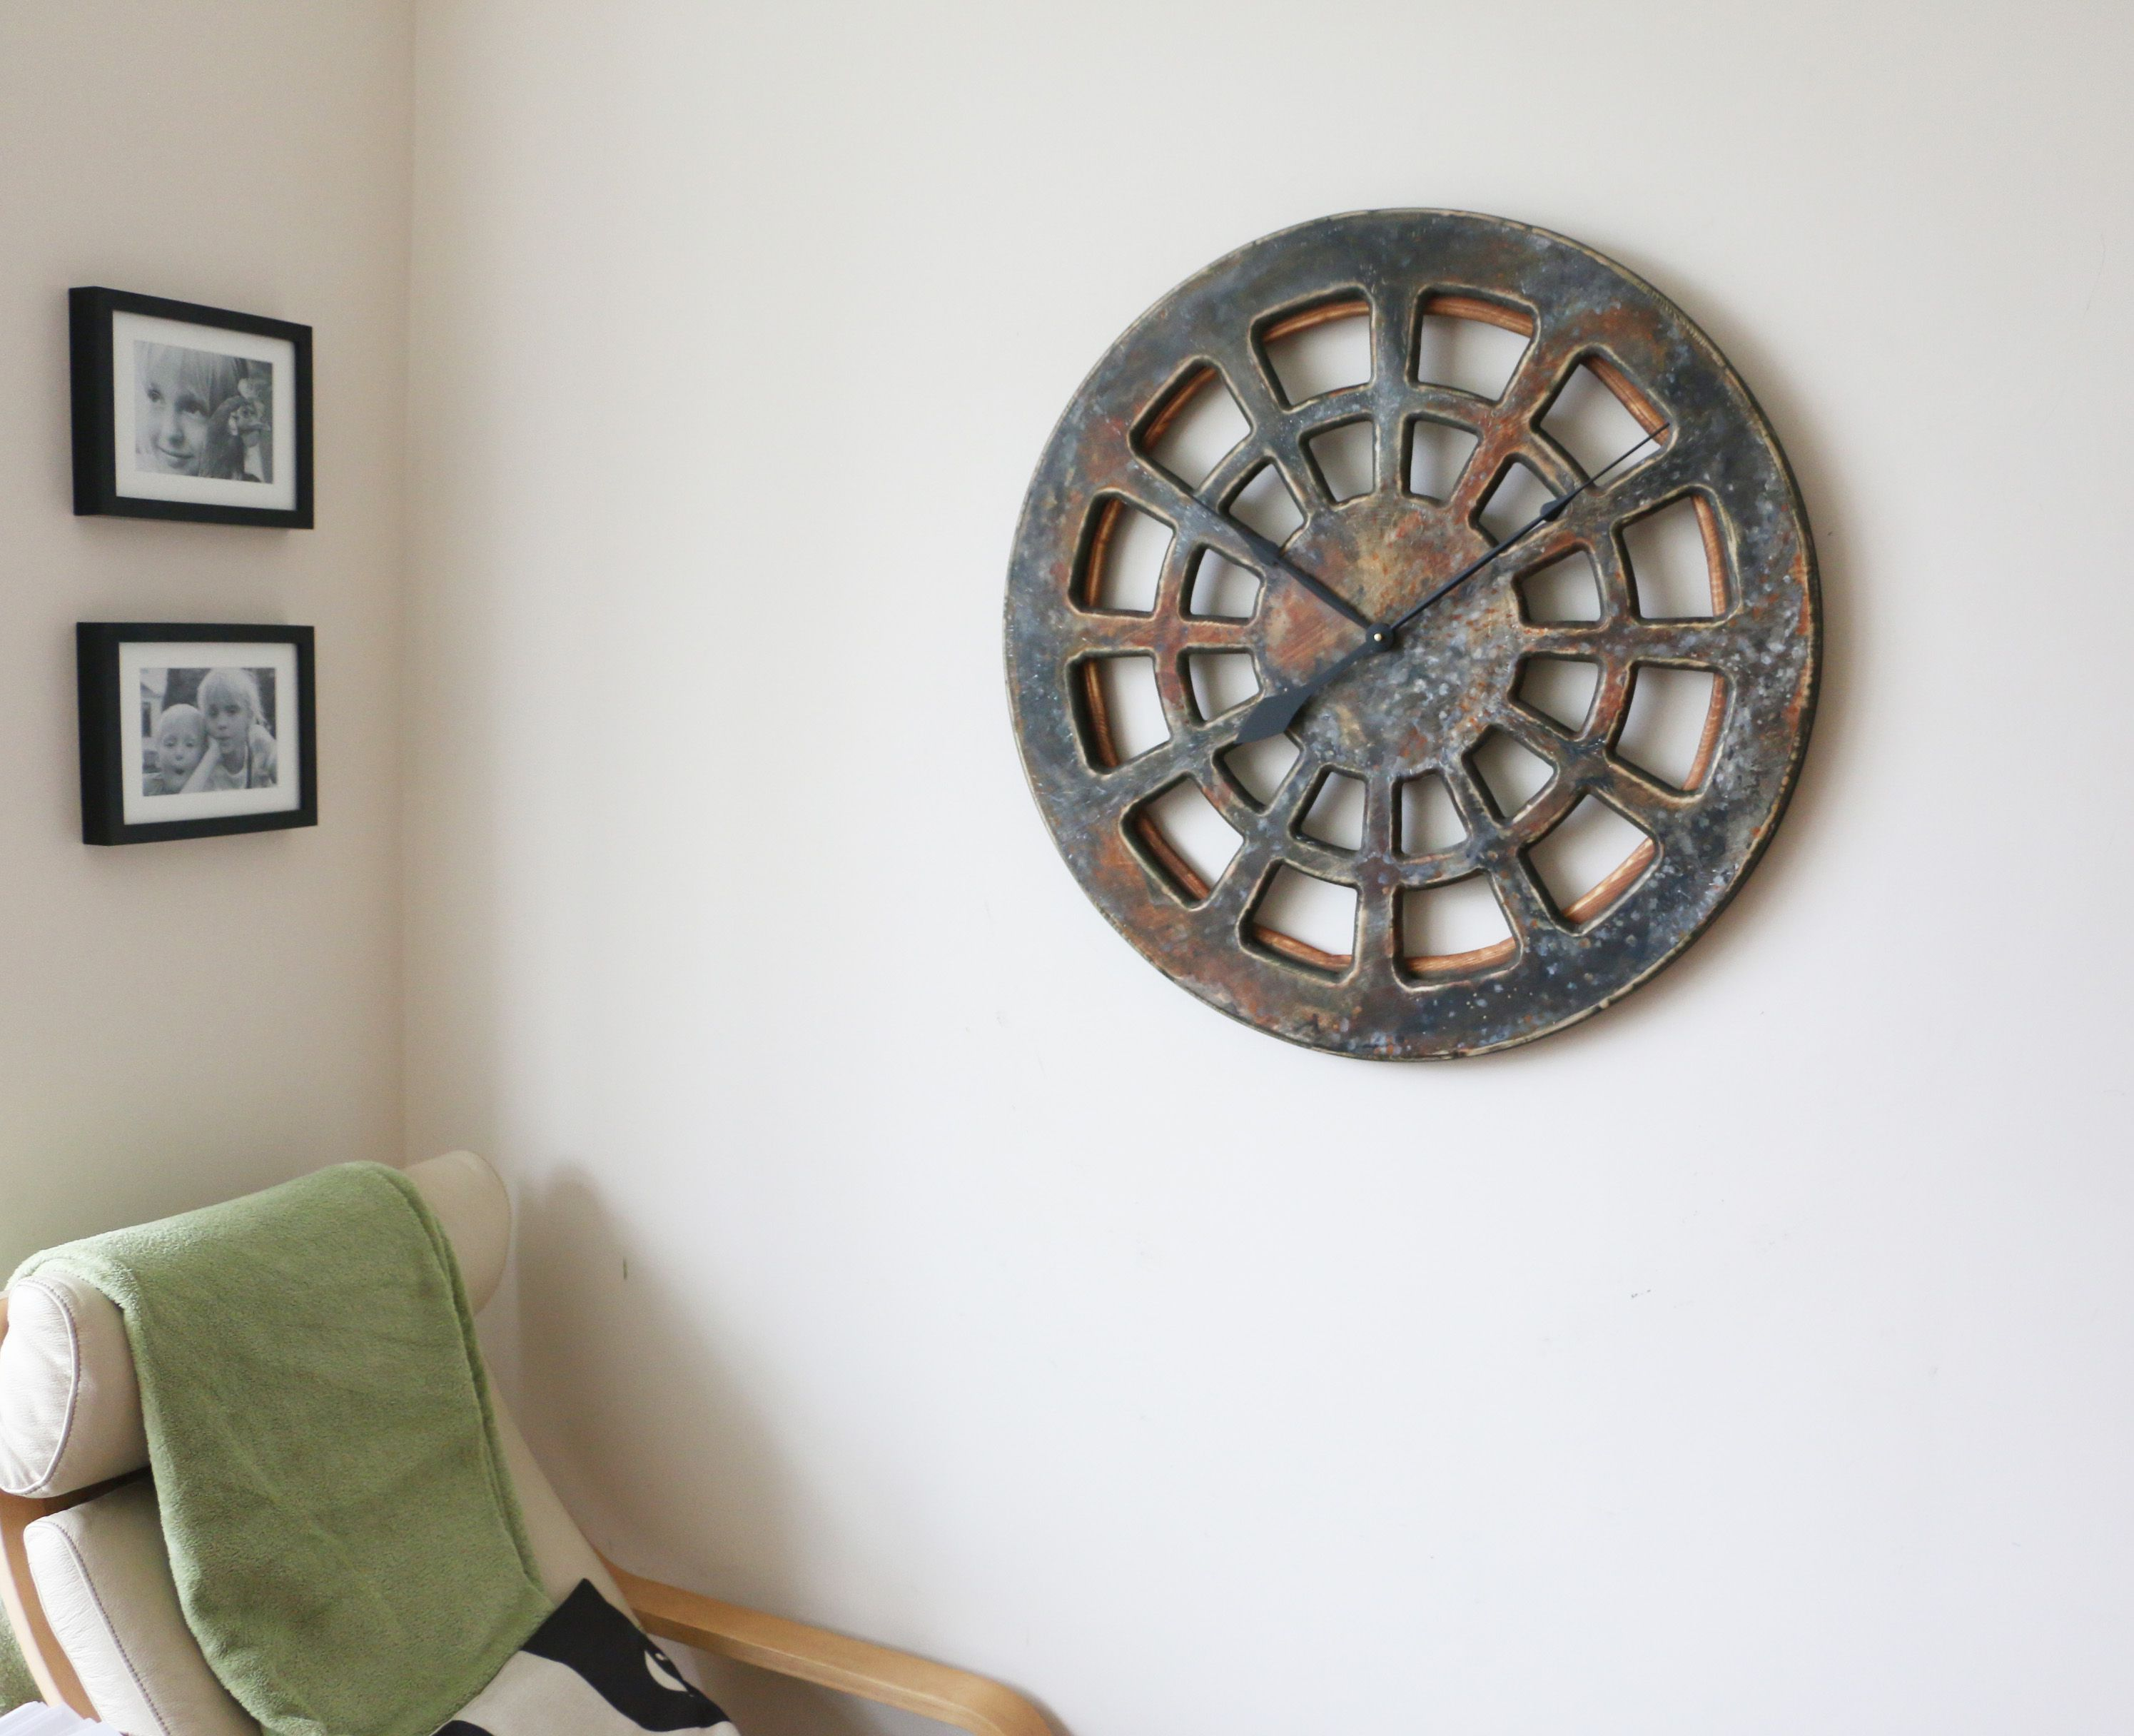 When You Look At Those Stunning Wall Clocks You Would Imagine Them In  Expensive Art Gallery